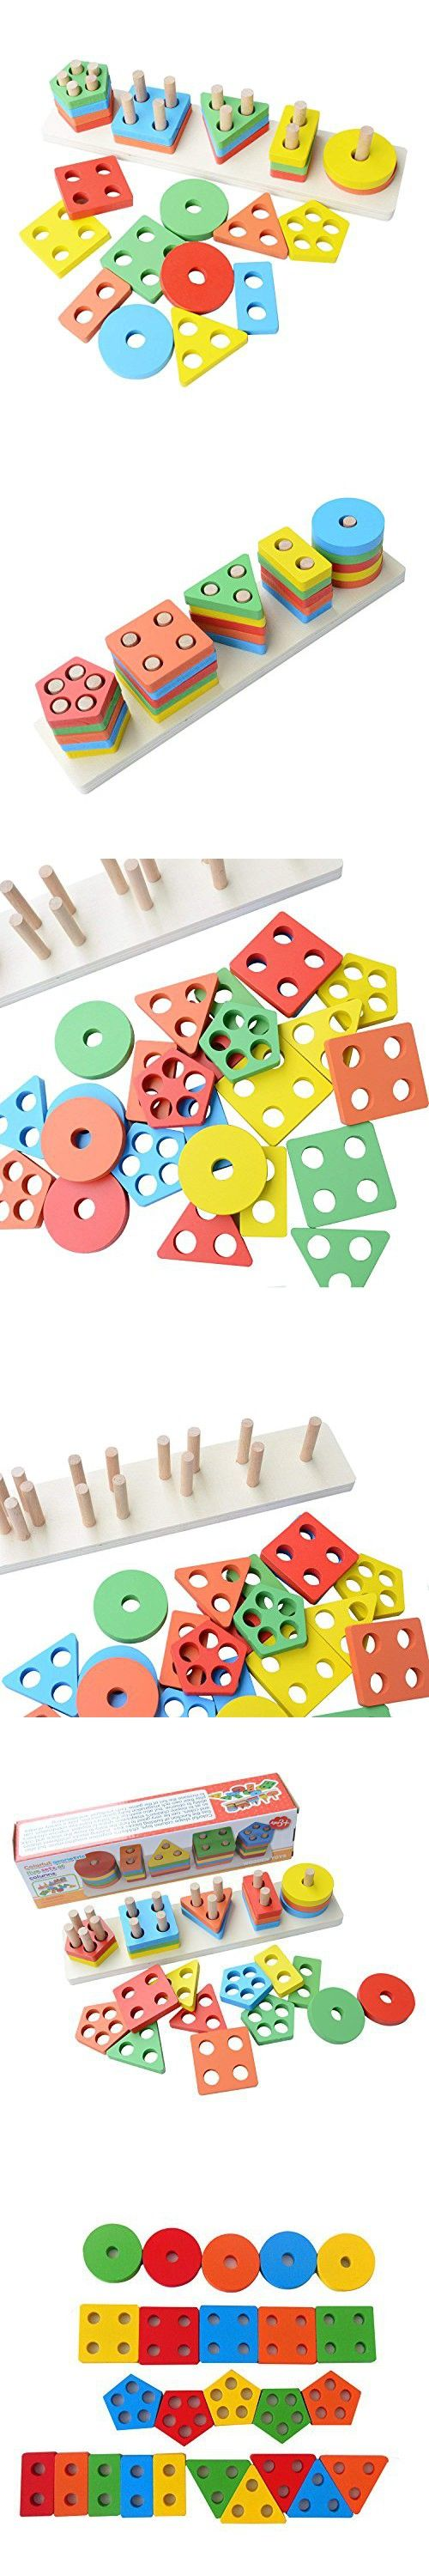 Educational Toddler Toys For 1 2 3 4 5 Year Old Boy Girls Stacking Toy Non Toxic